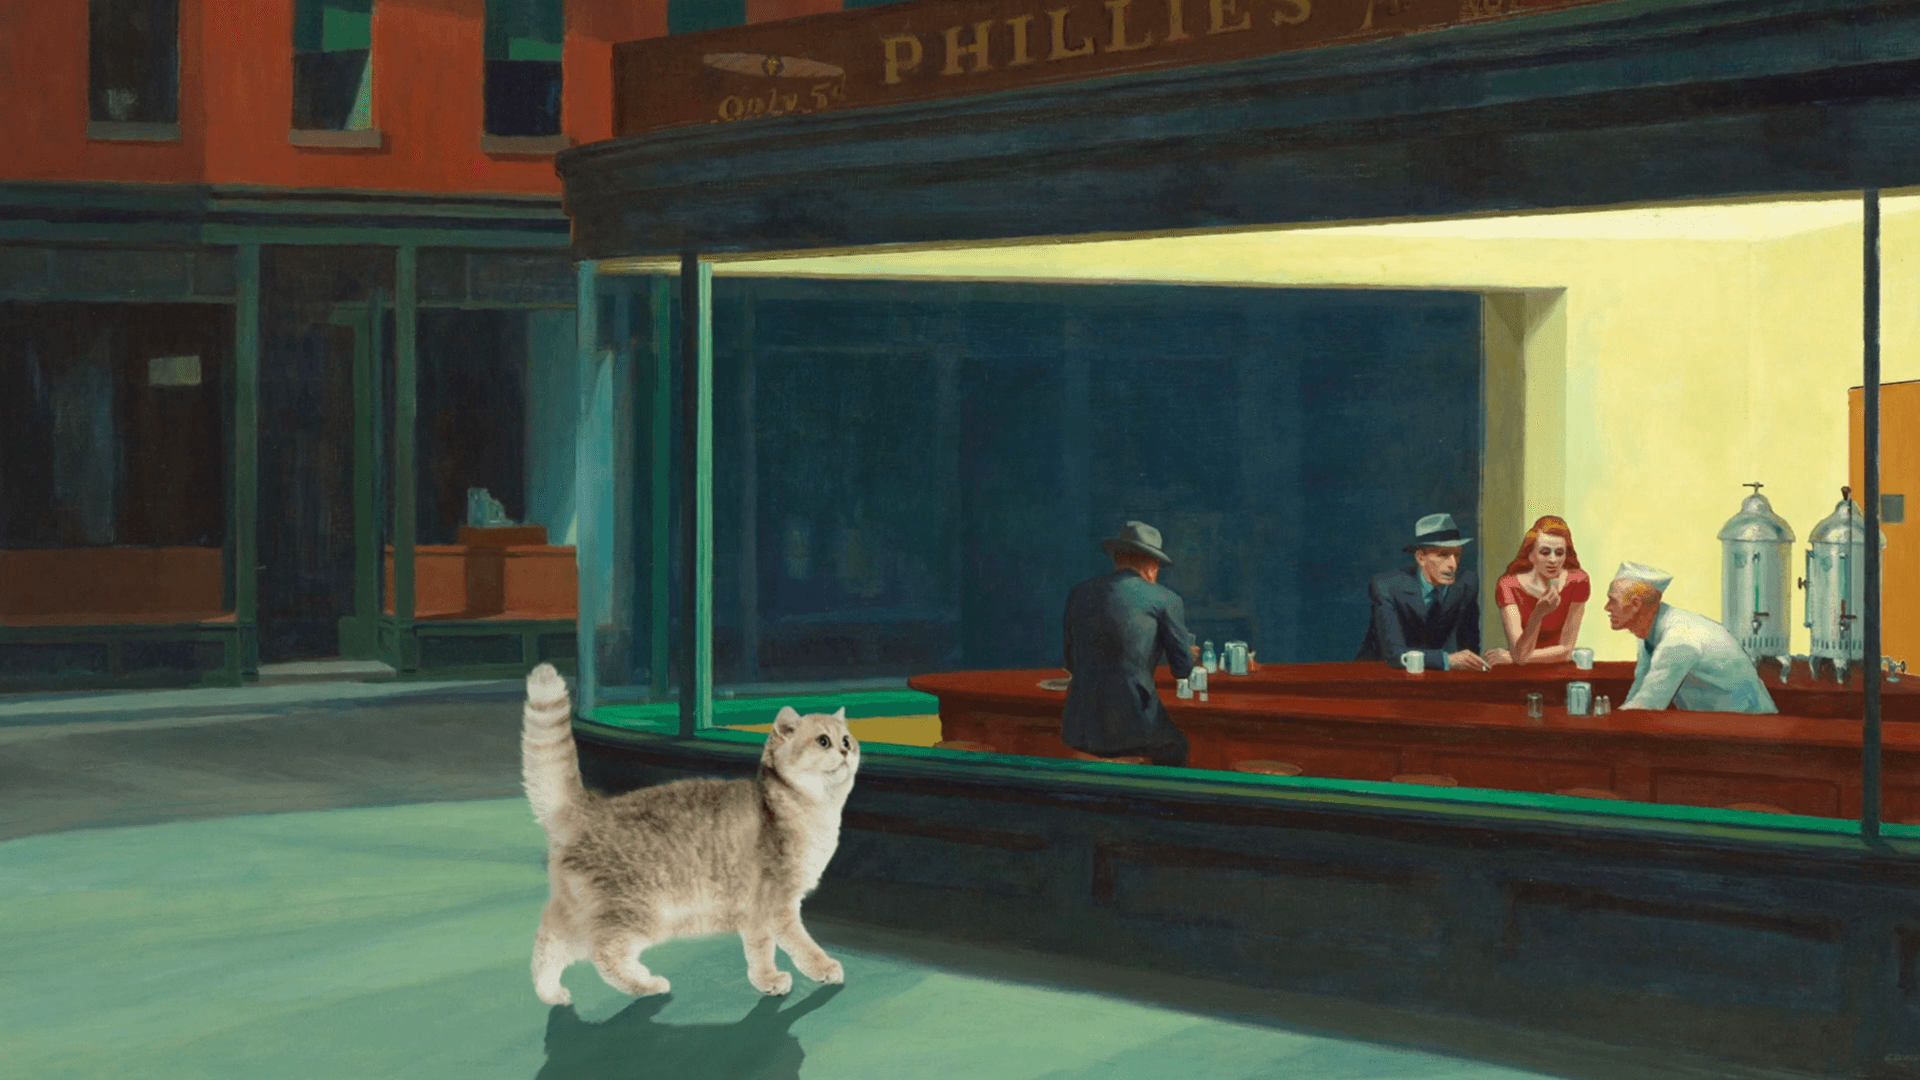 Edward the Hopper - An animation about a cat named Edward hopping around Edward Hopper's paintings.